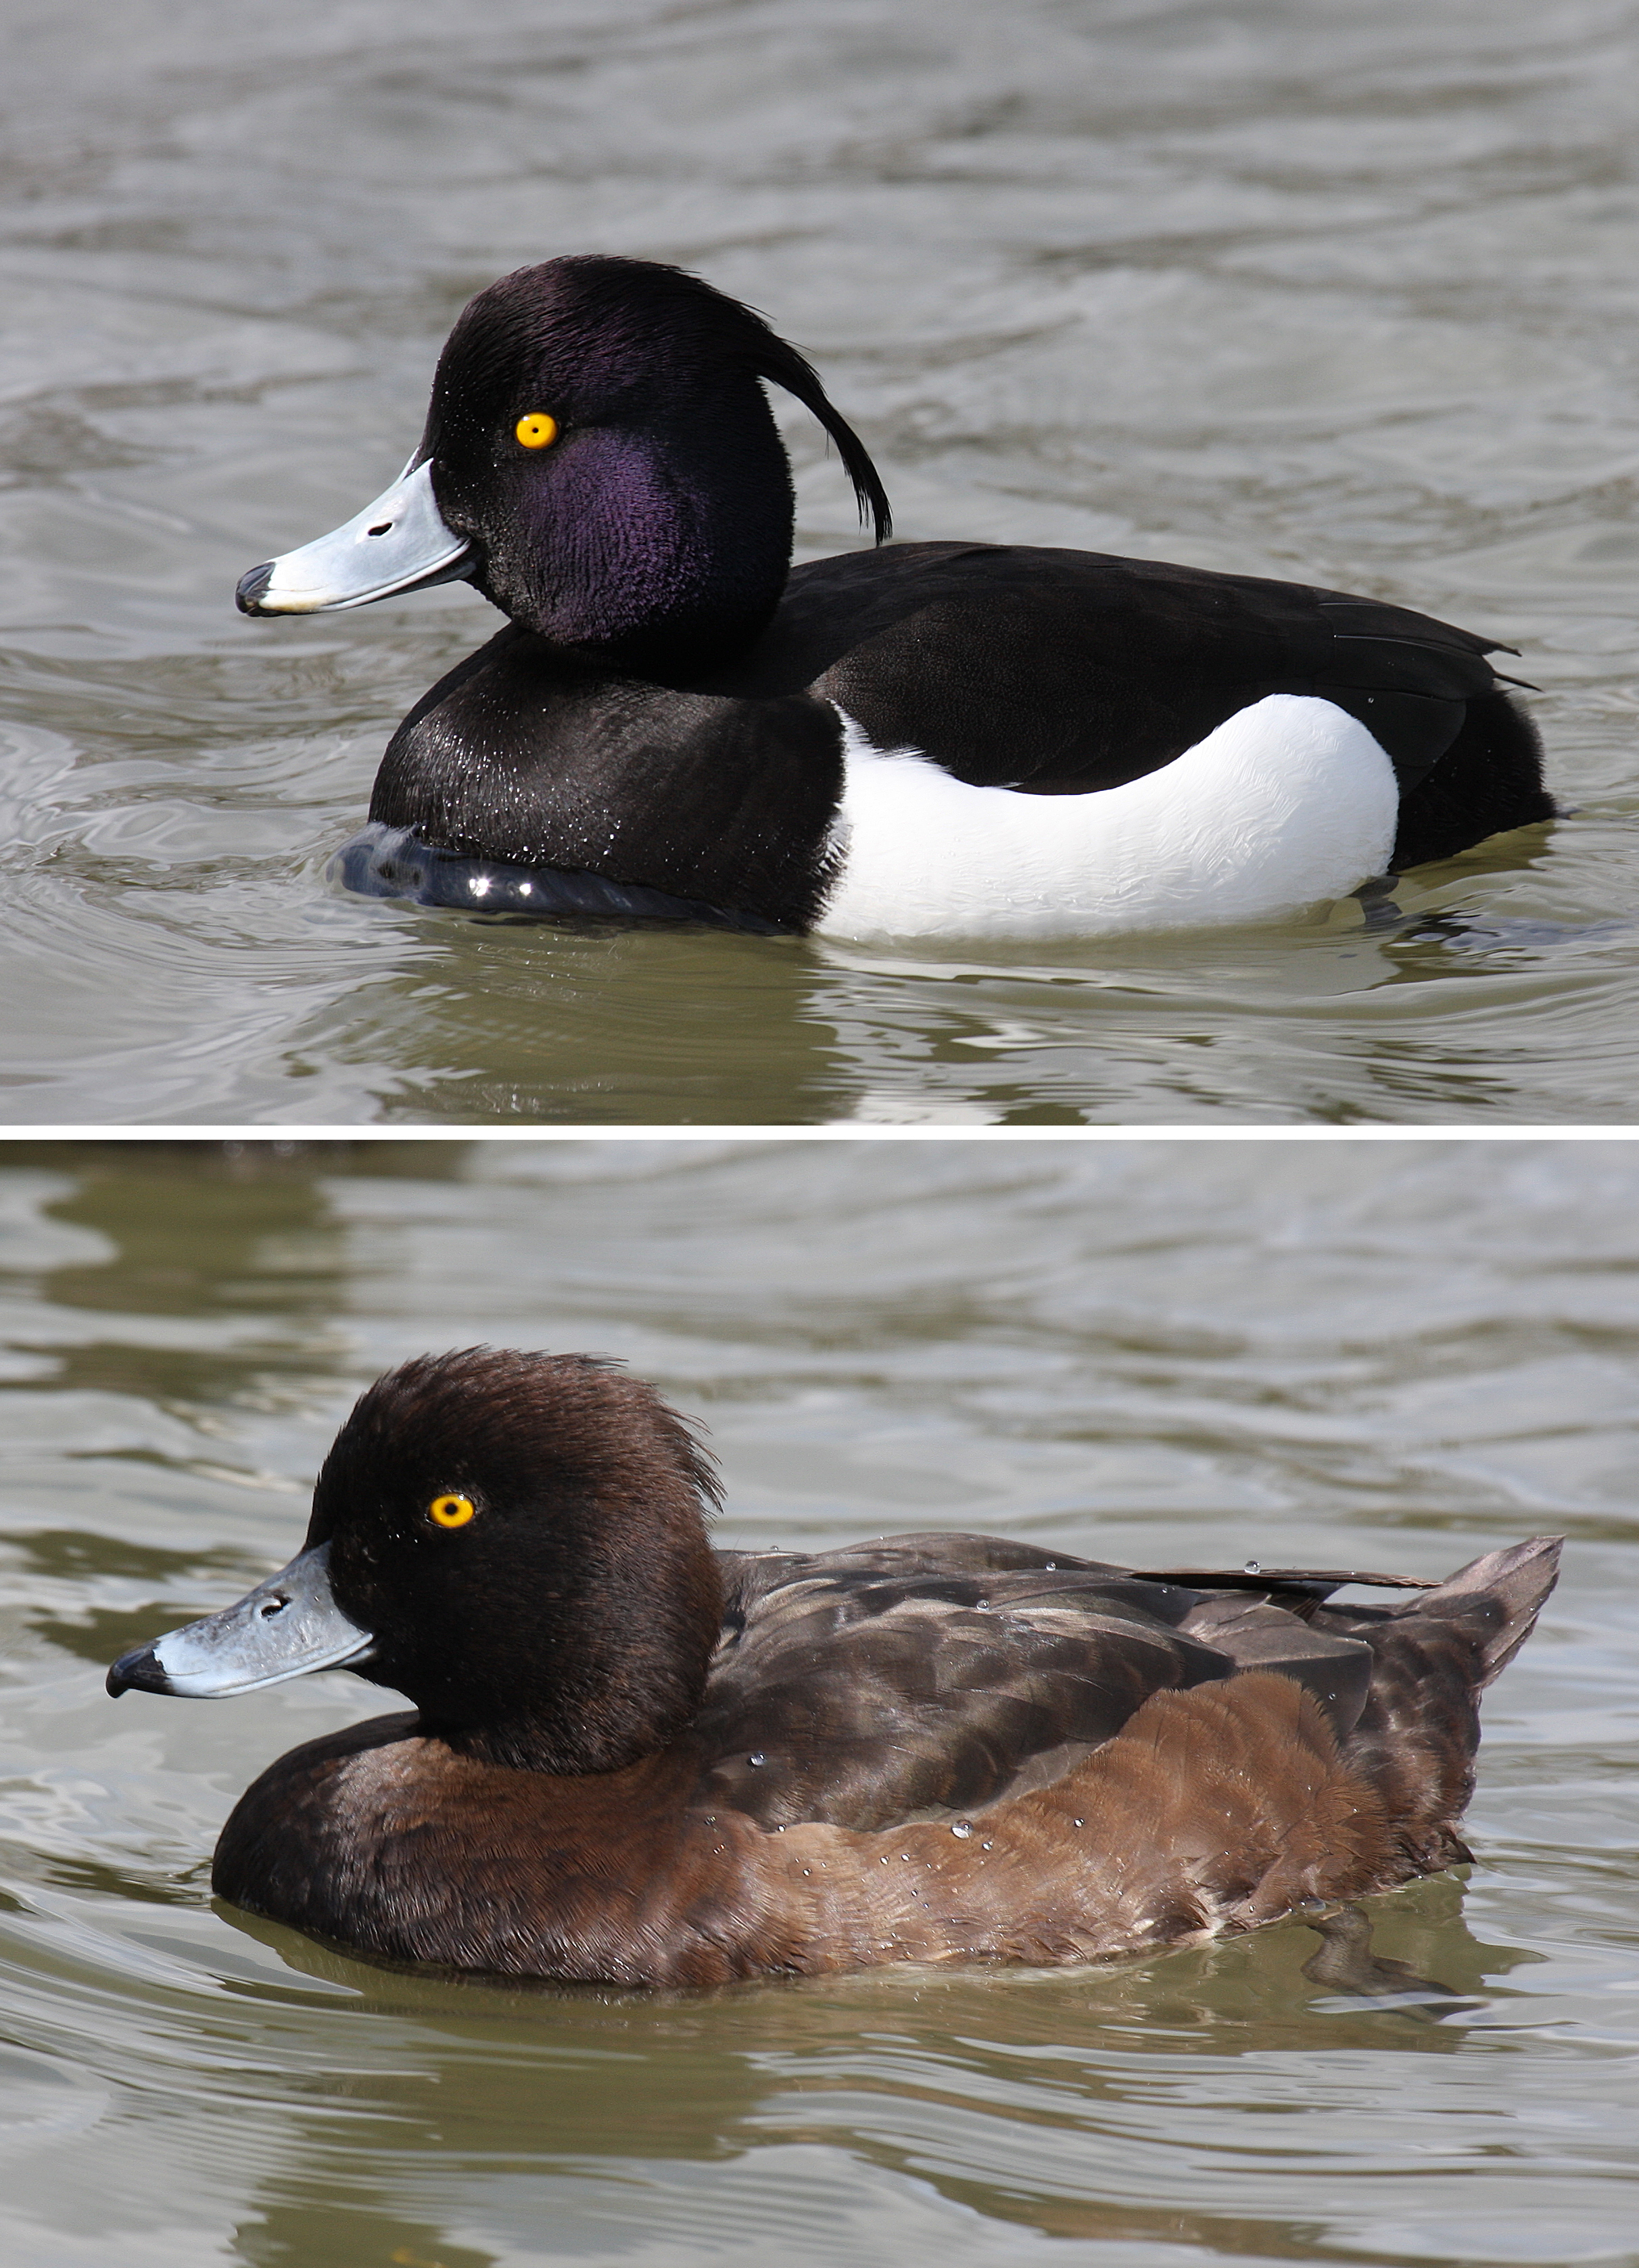 Hunting Tufted Duck in iceland